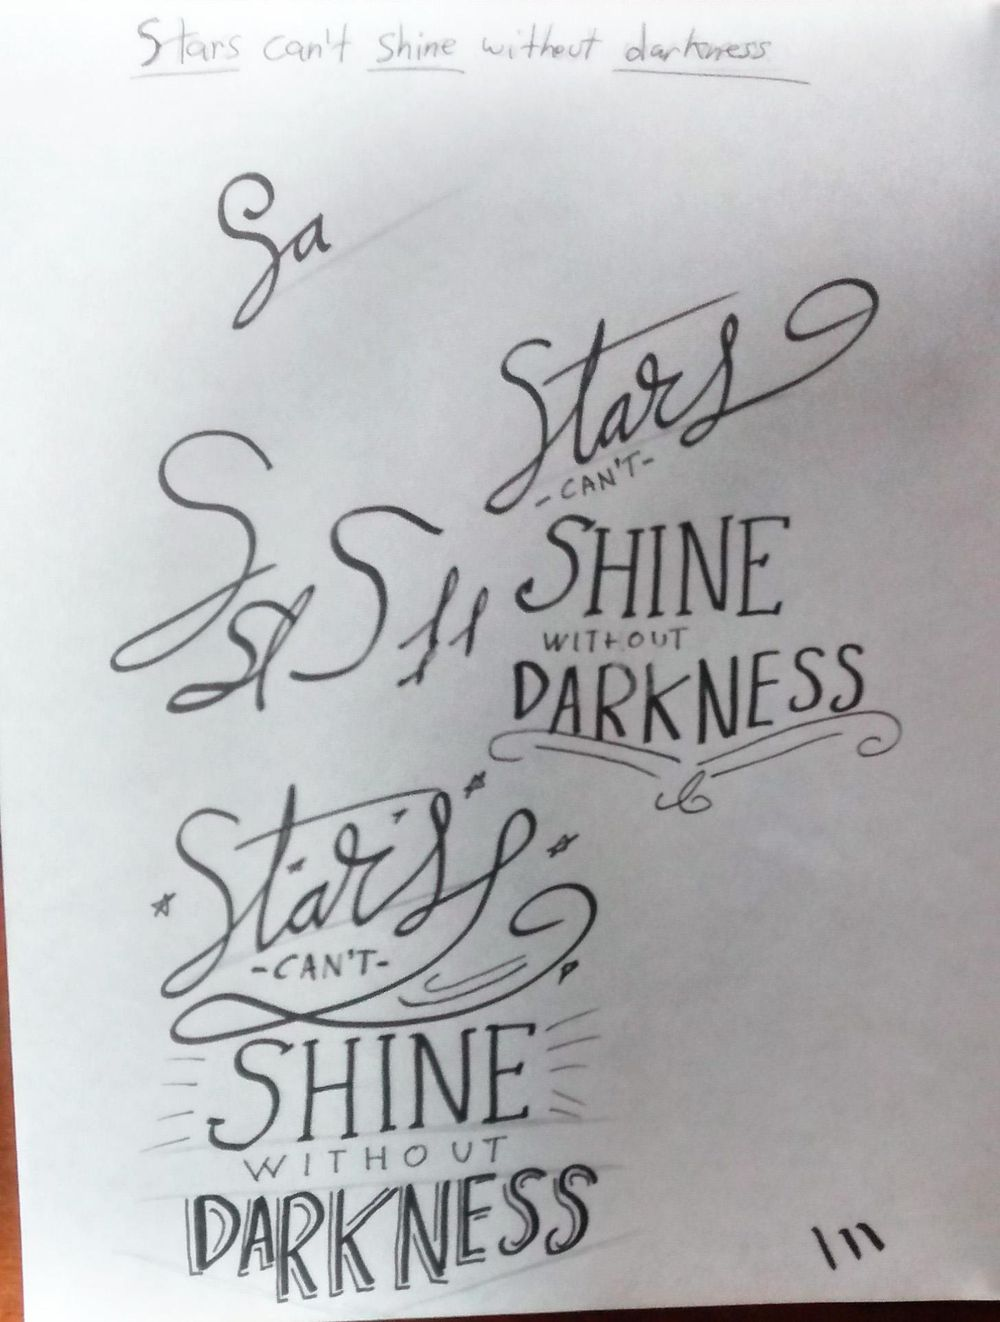 Stars - image 1 - student project